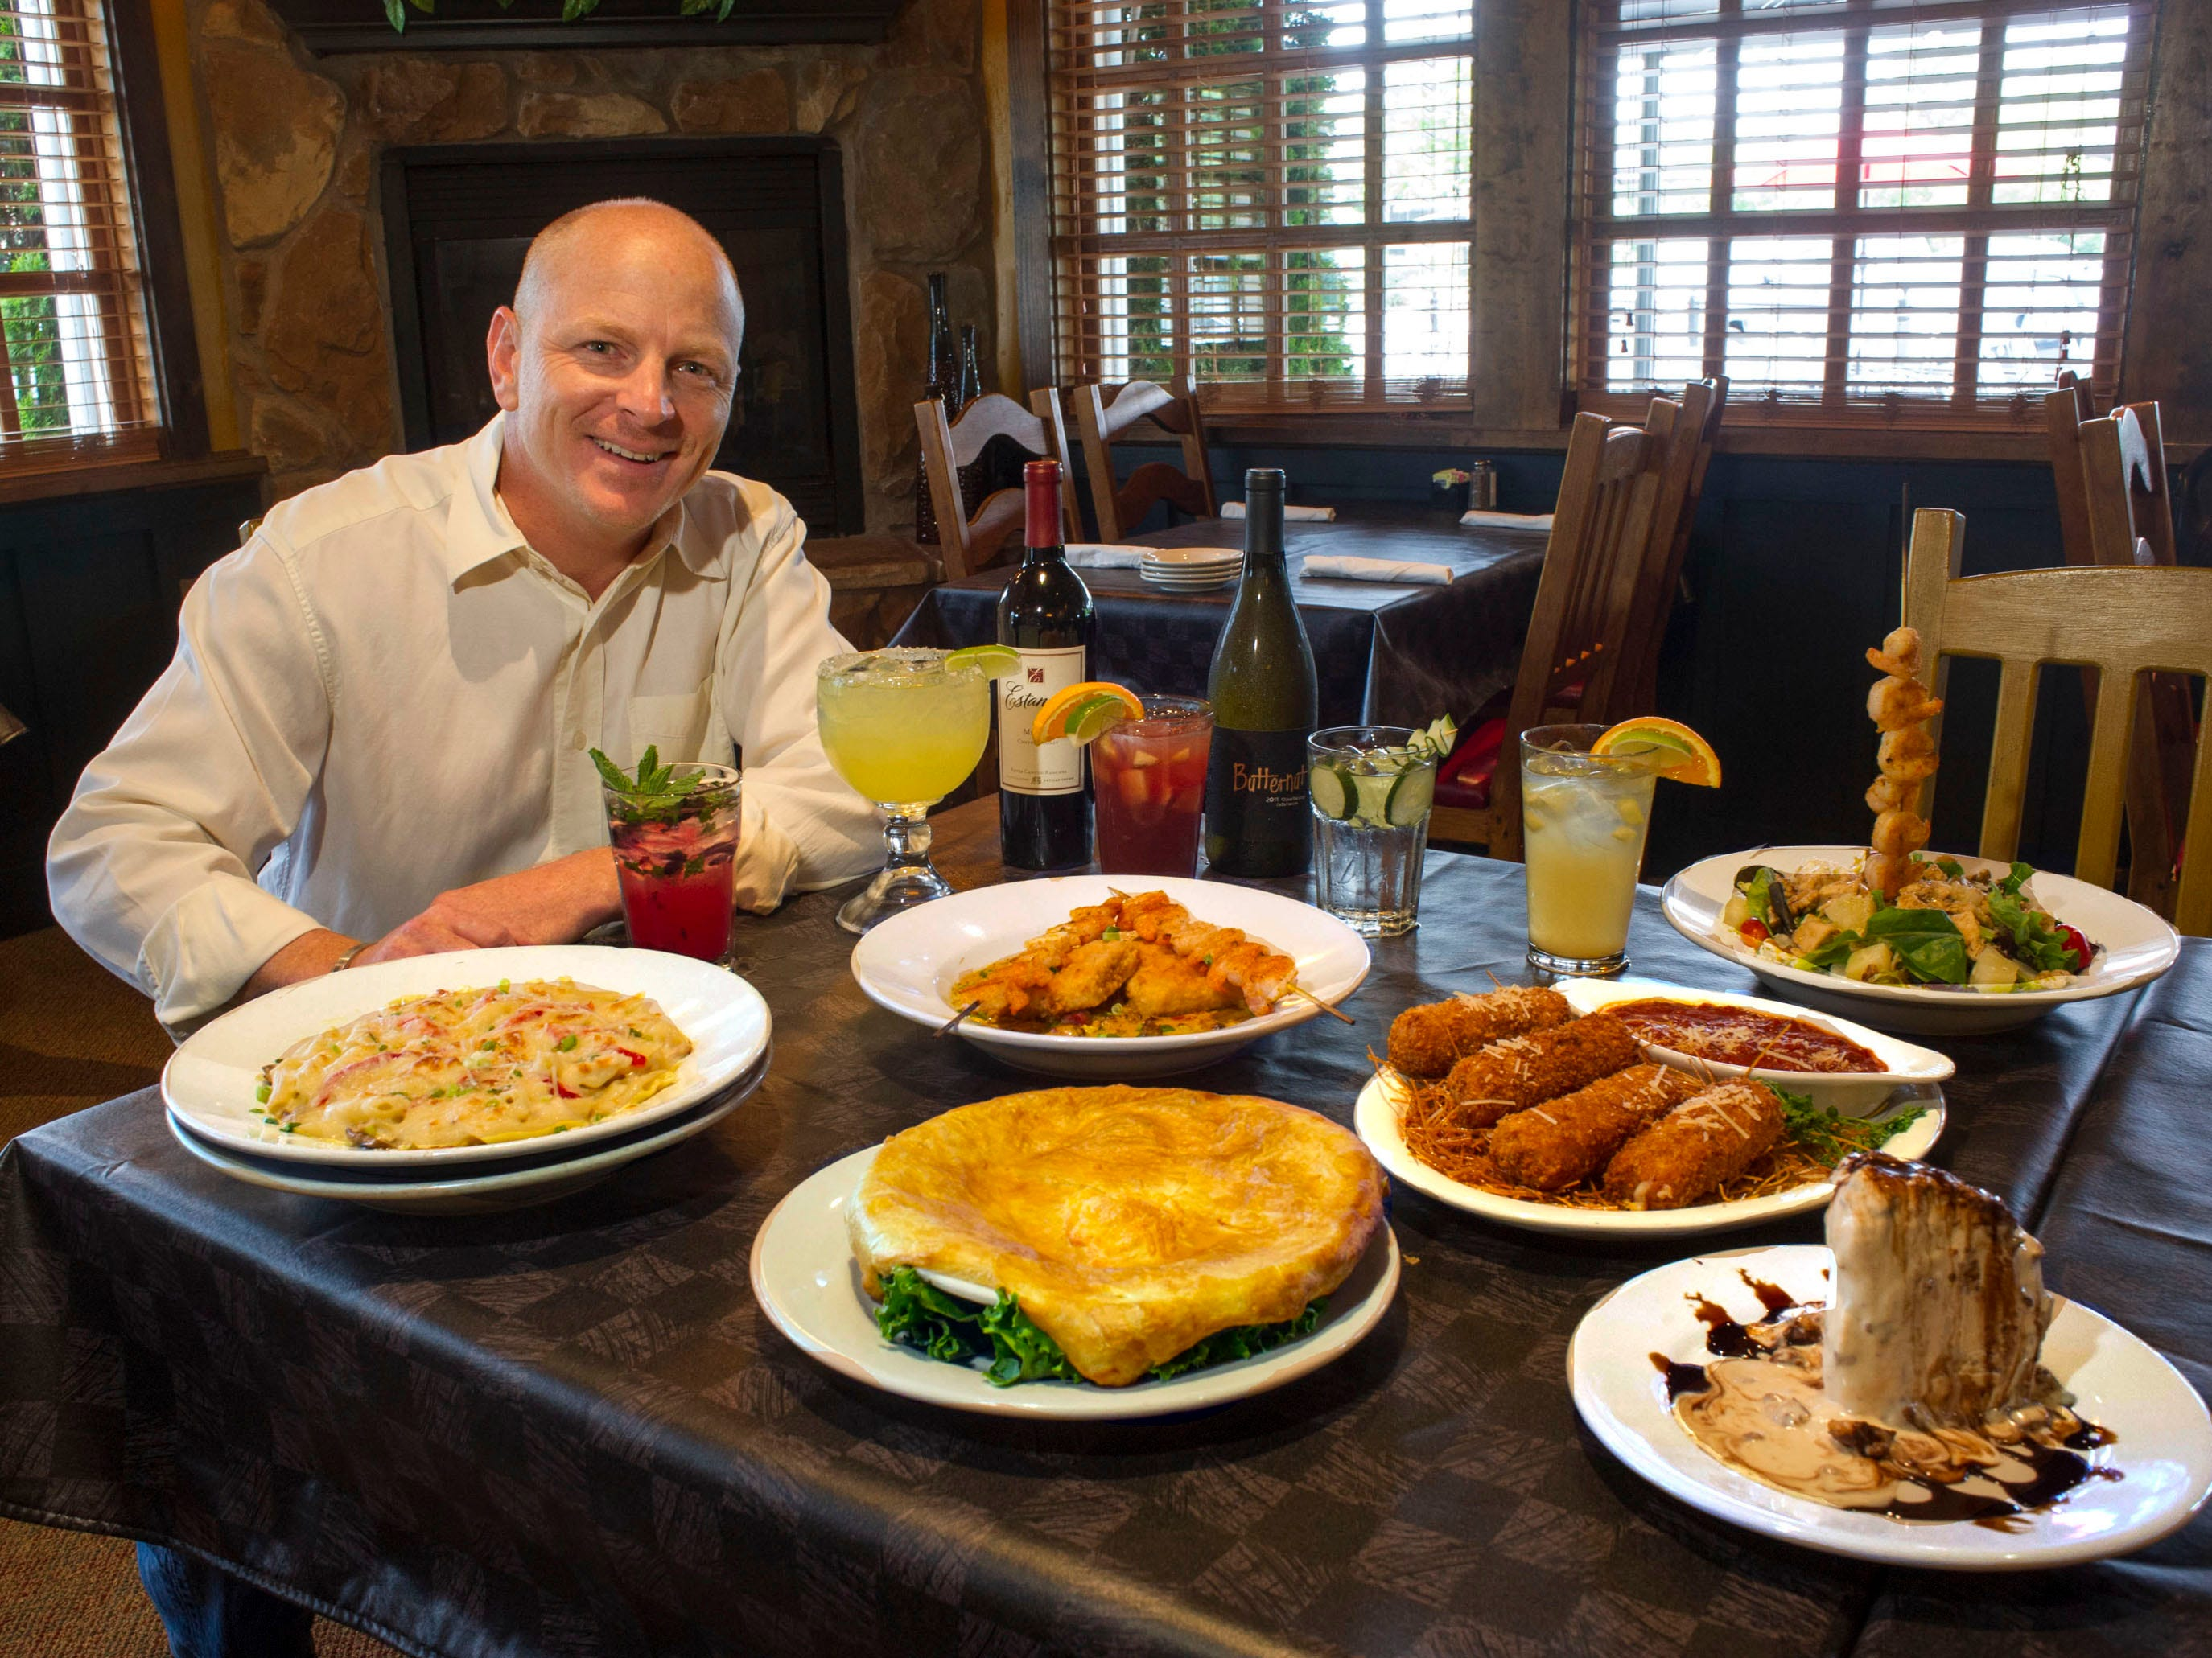 New Silver Spoon owner Dave McFarland shows off some menu choices on Tuesday, July 2, 2013, at the West Knox County restaurant.